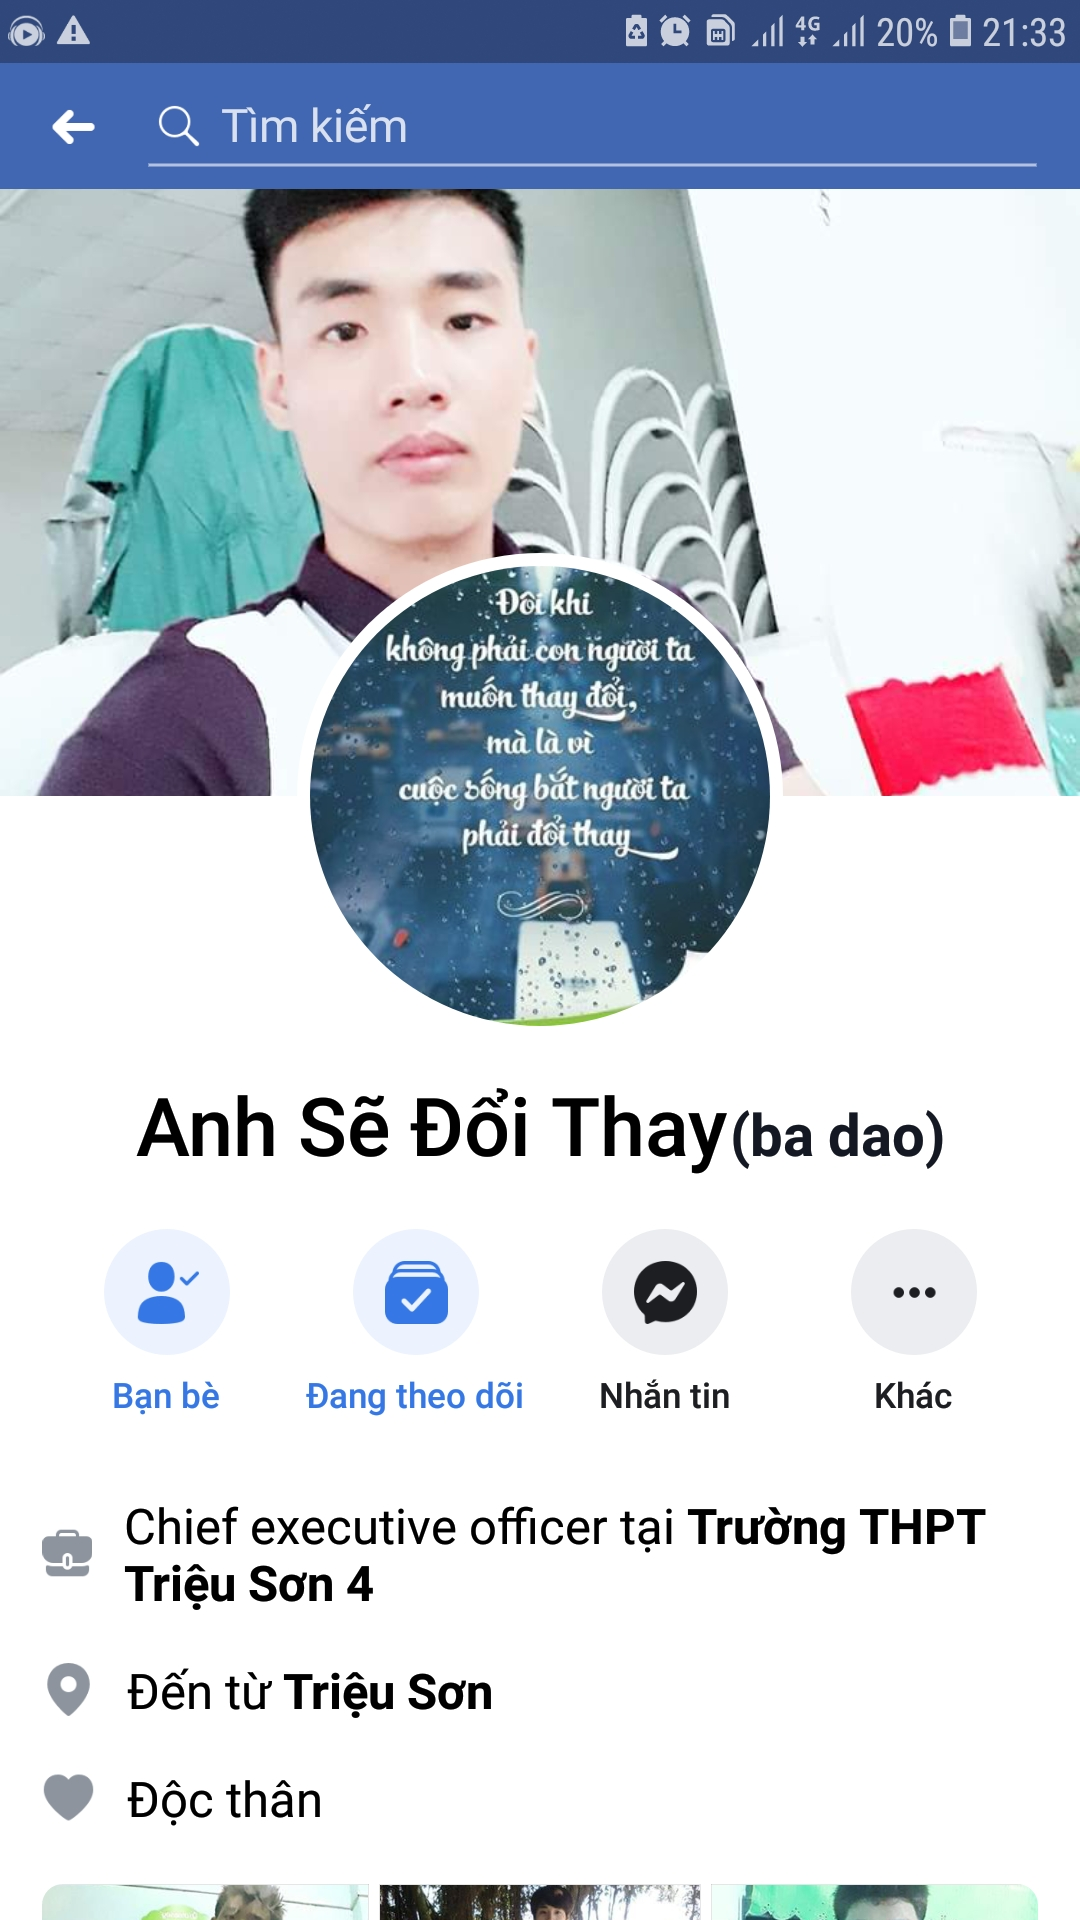 Screenshot_20190414-213326_Facebook.jpg